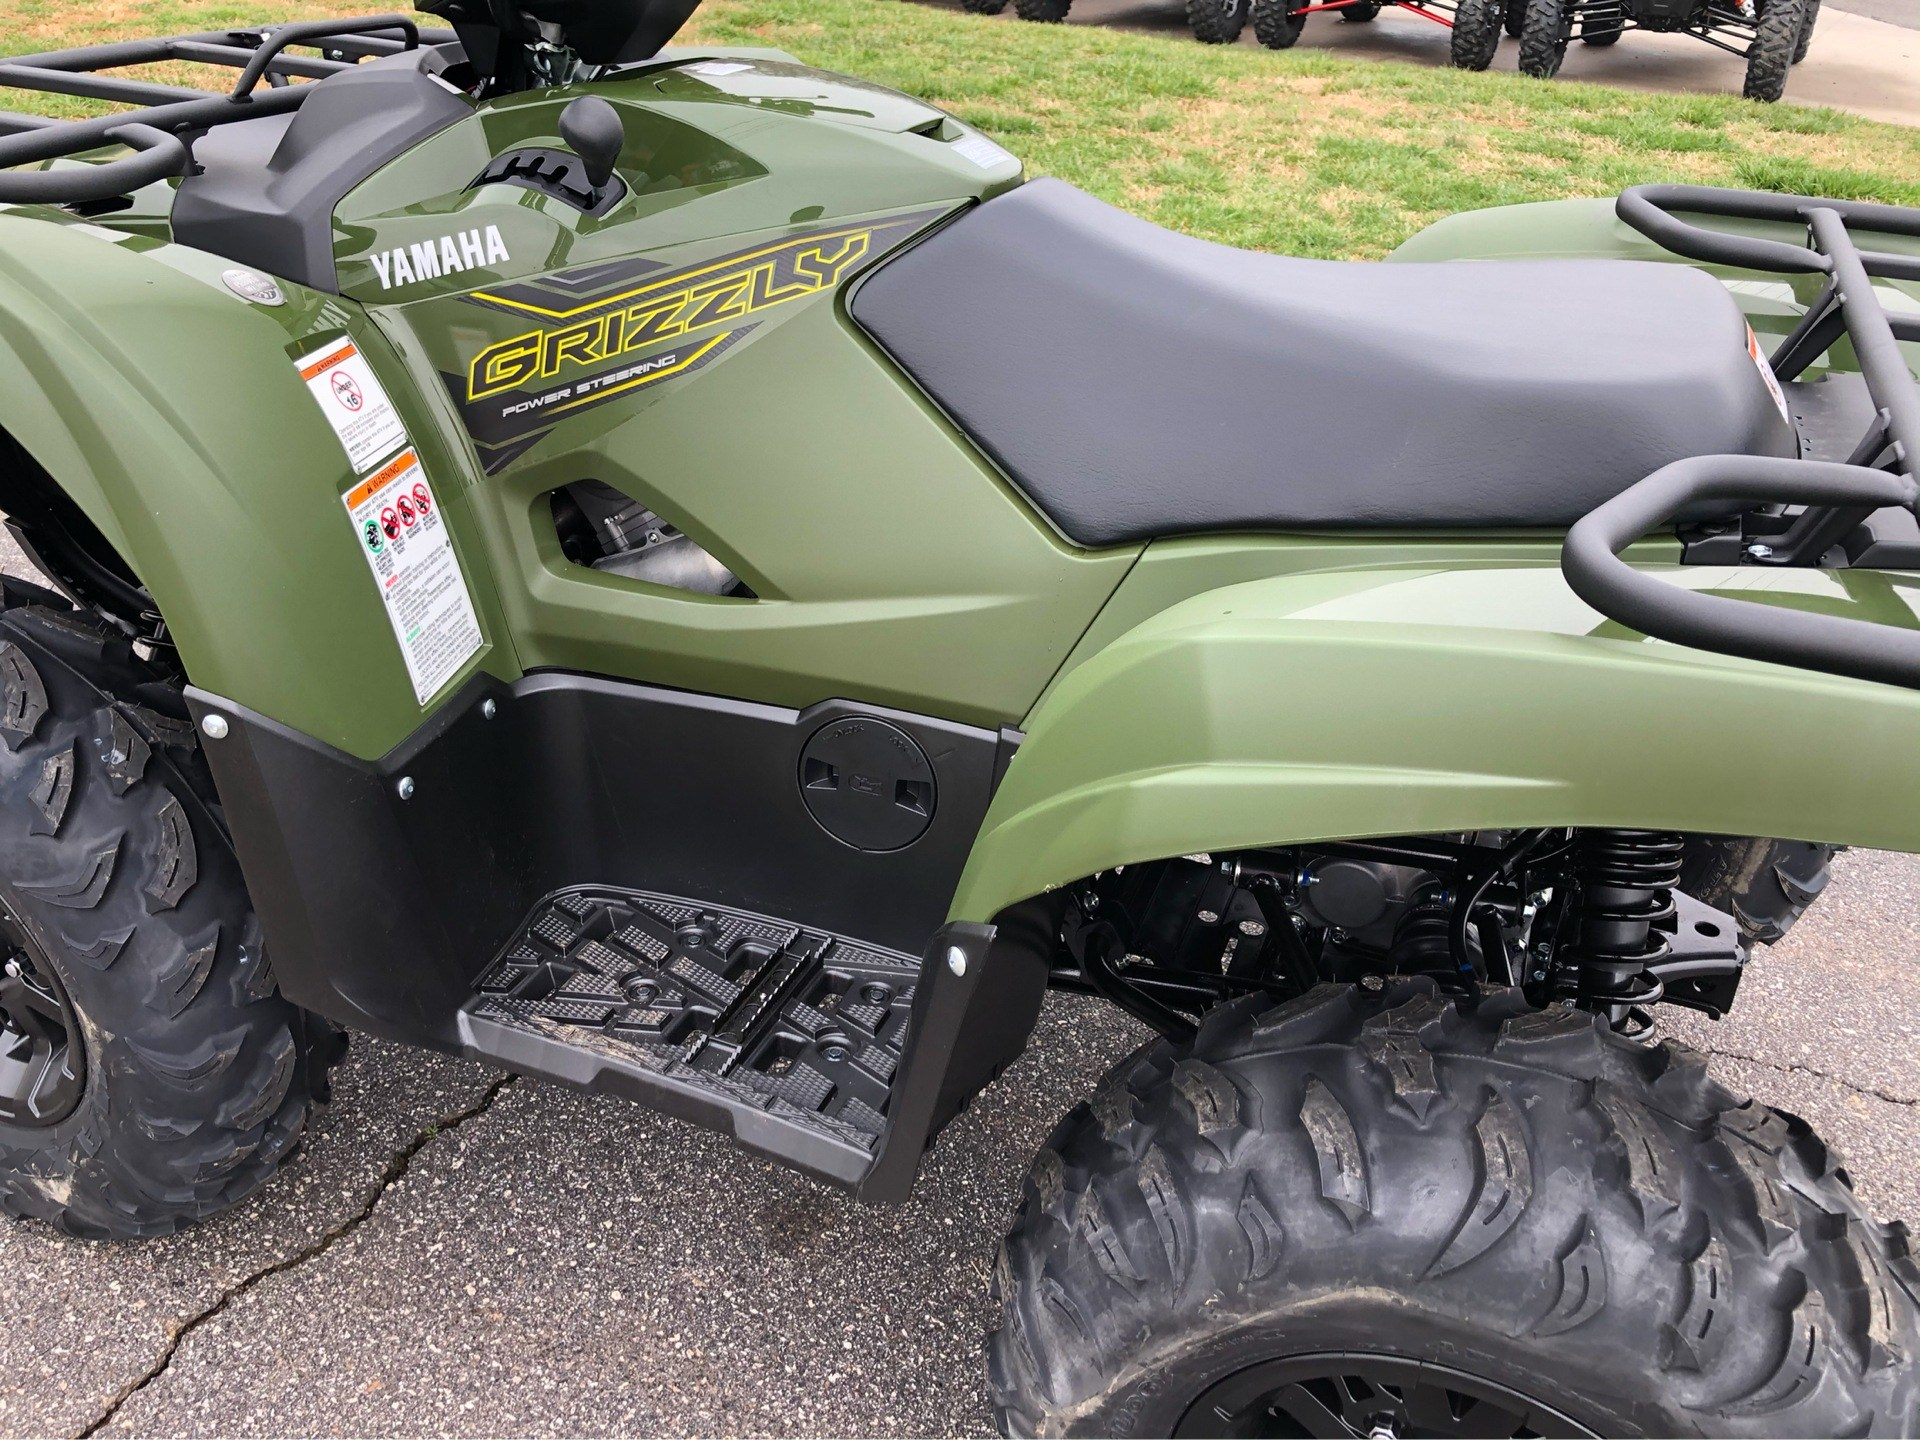 2020 Yamaha Grizzly EPS in Statesville, North Carolina - Photo 6